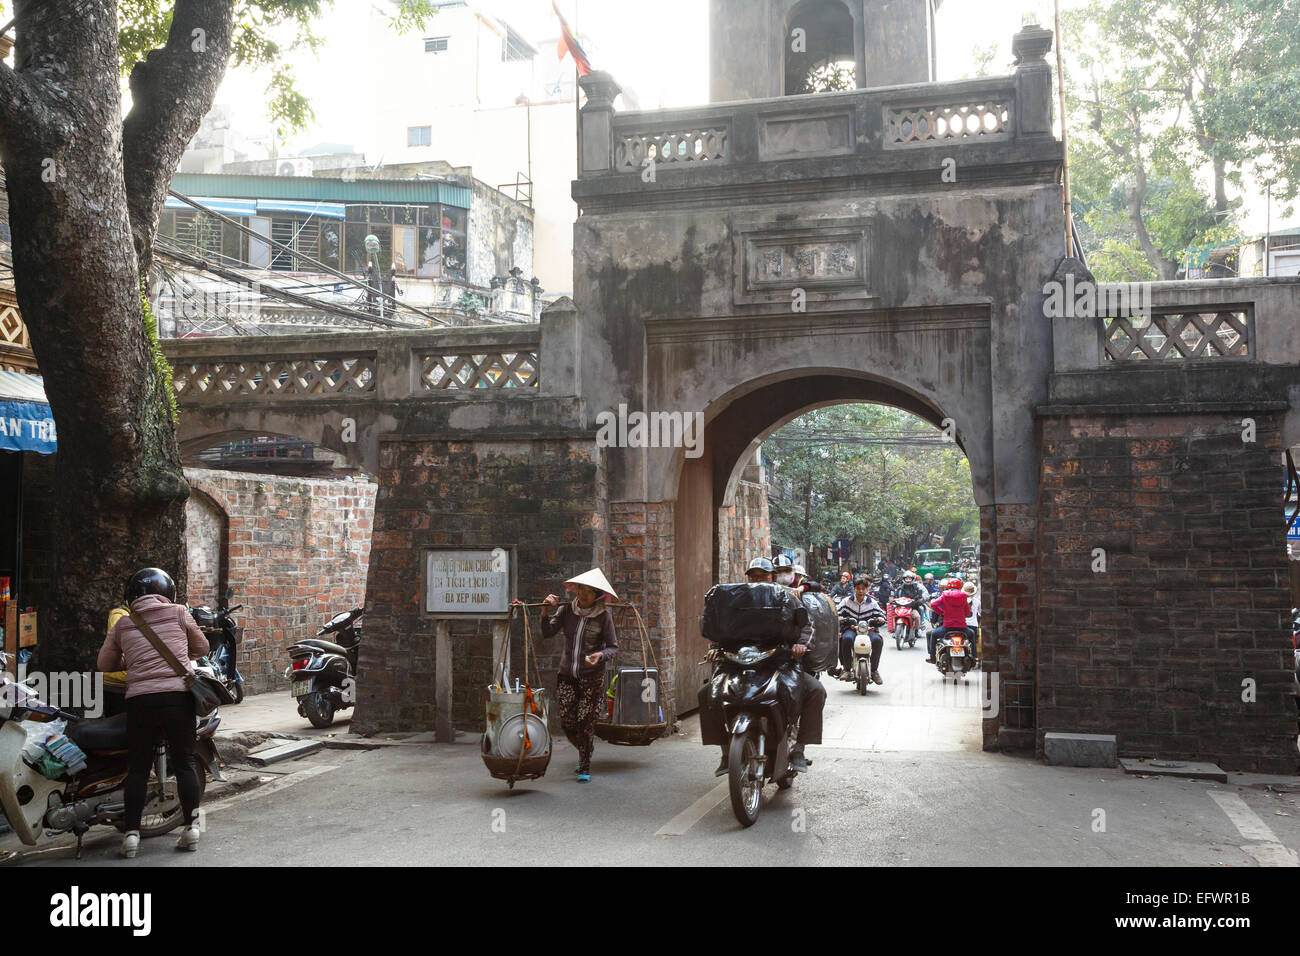 Gate to the old quarter, Hanoi, Vietnam. - Stock Image